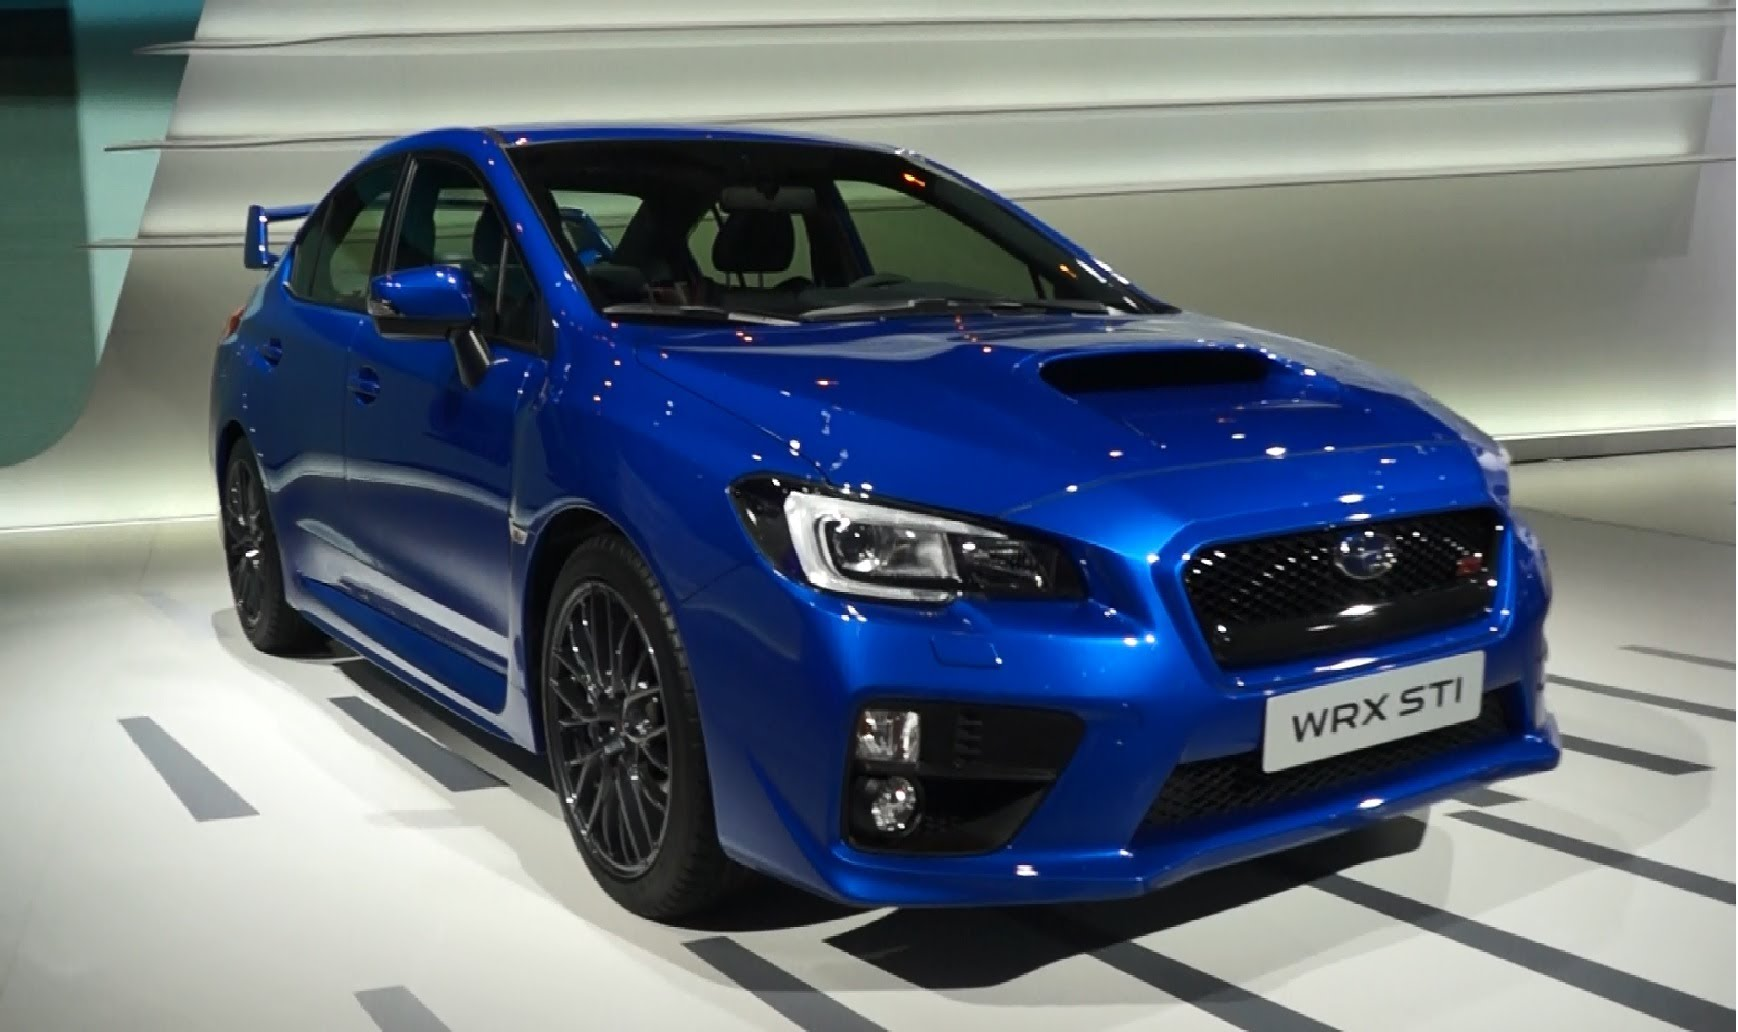 subaru impreza wrx sti 2015 review amazing pictures and images look at the car. Black Bedroom Furniture Sets. Home Design Ideas